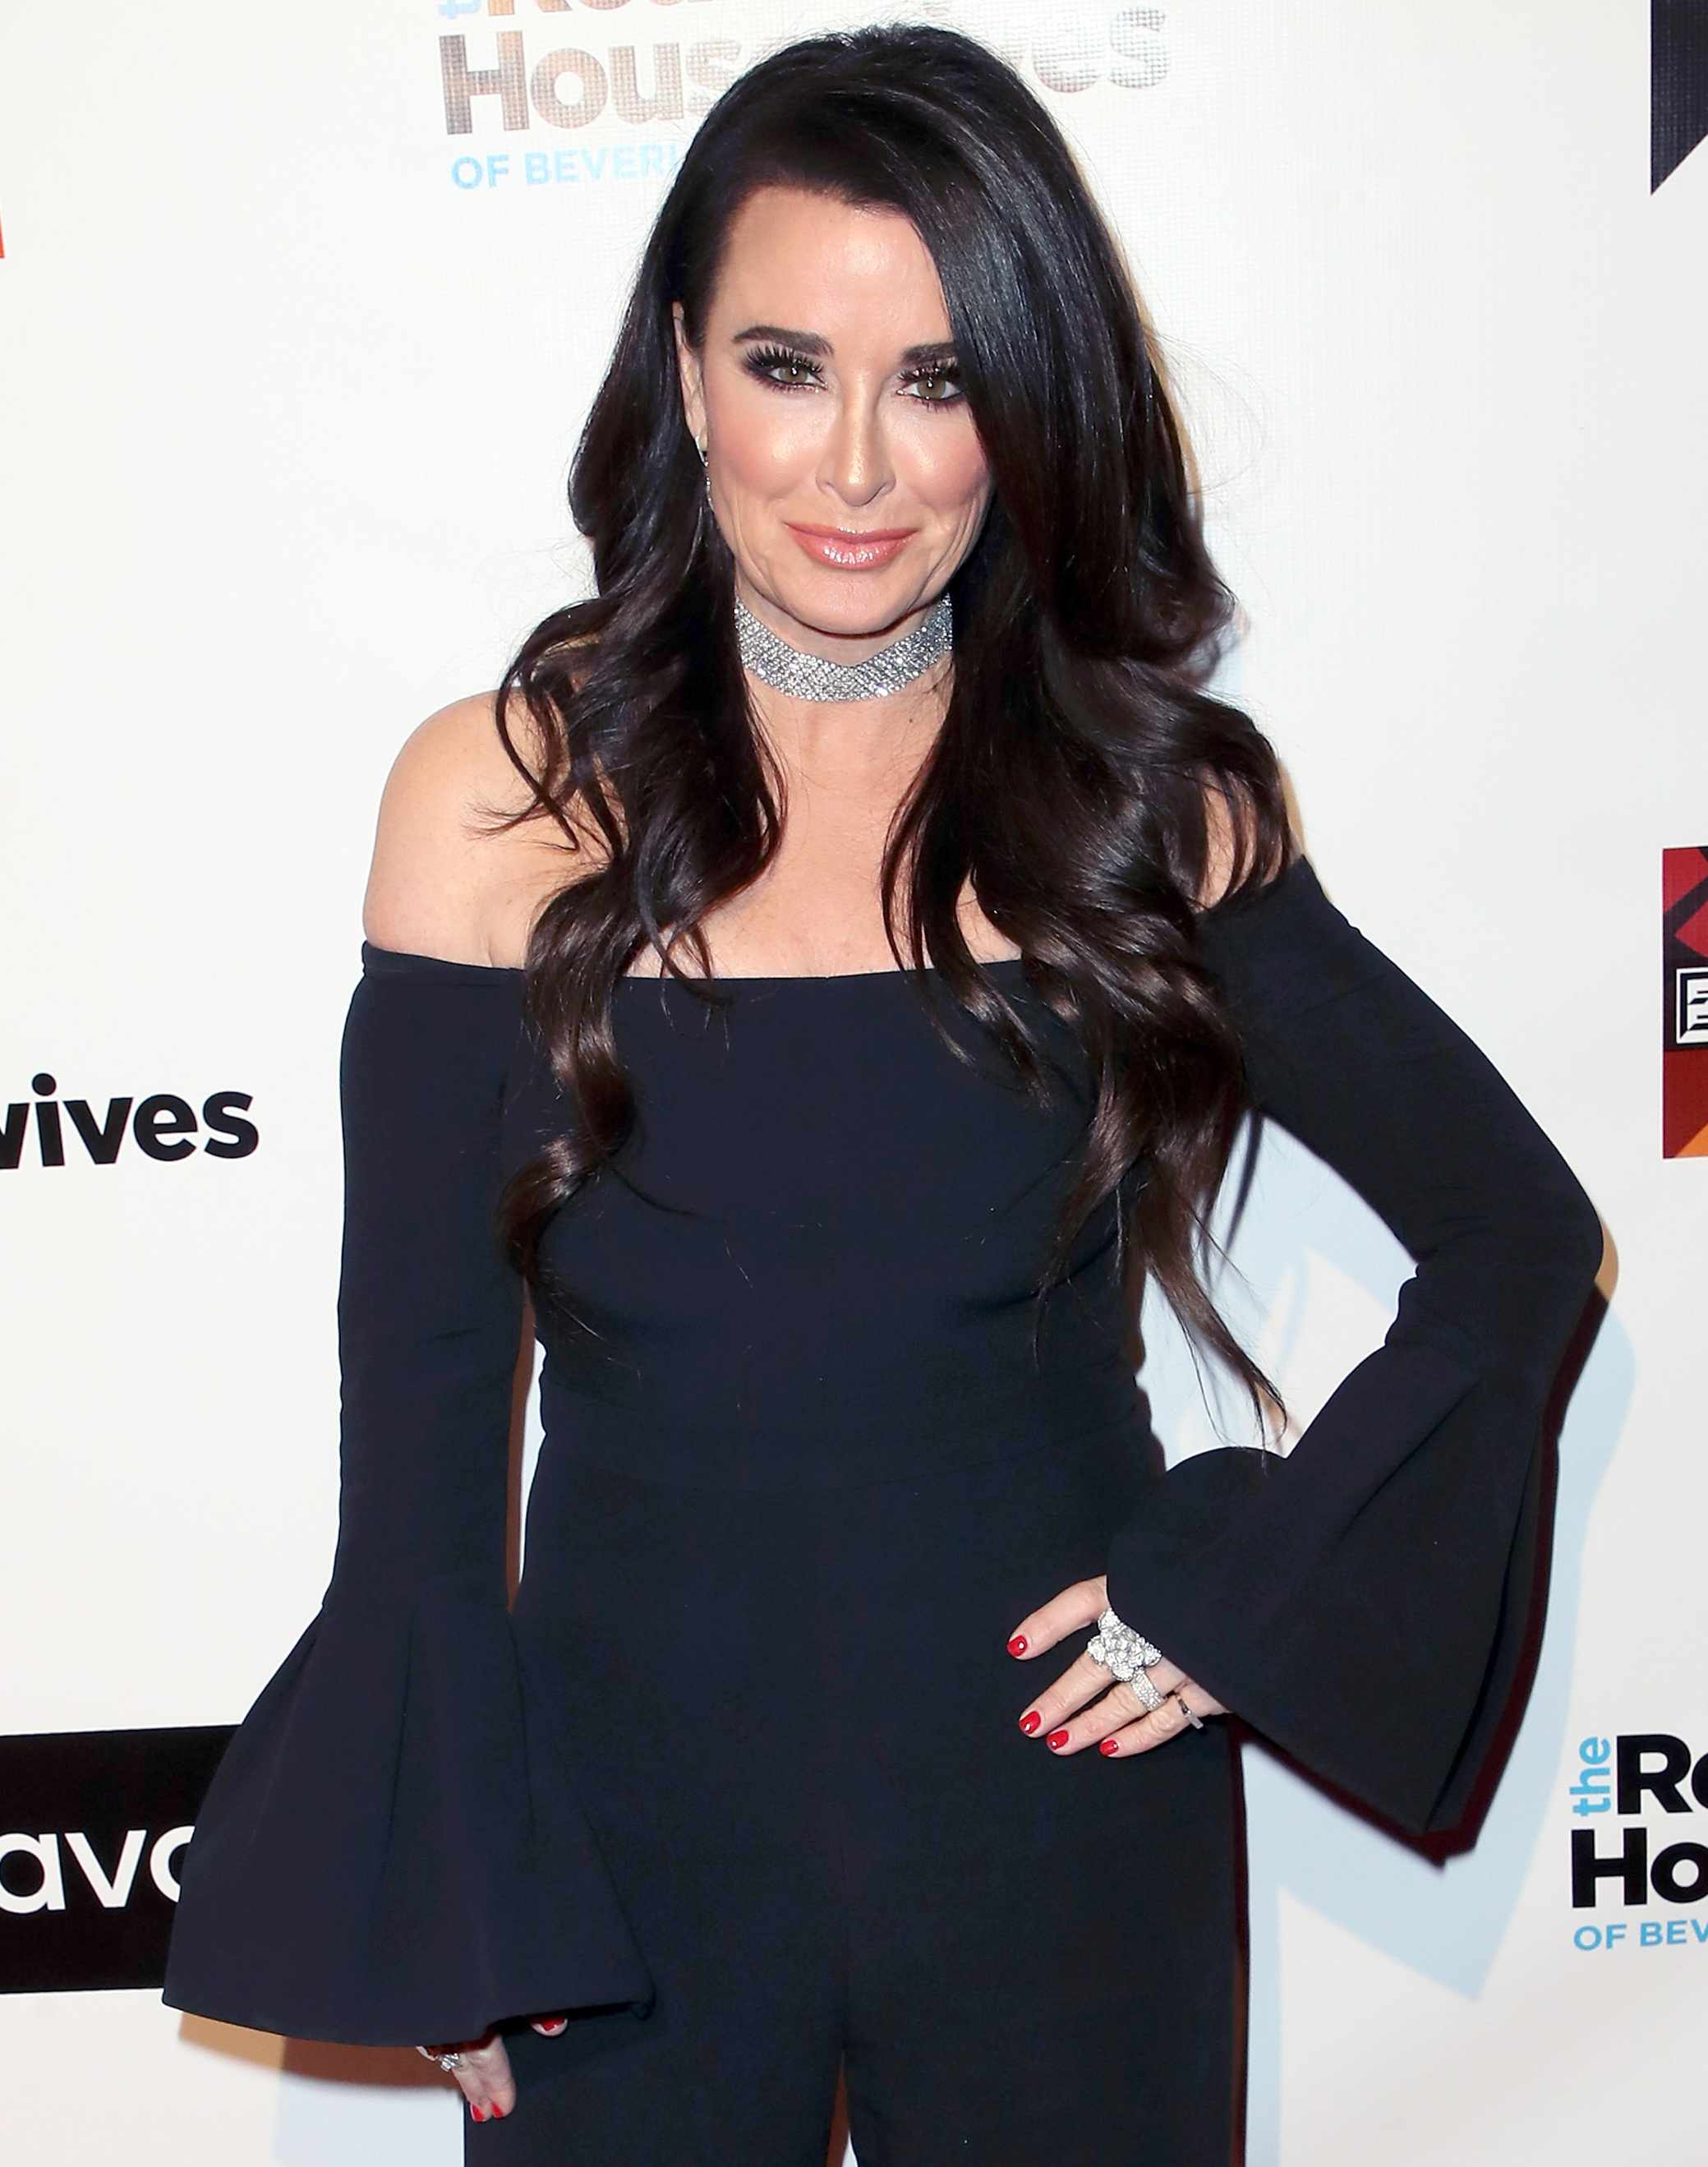 2079x2637 - Kyle Richards Wallpapers 7